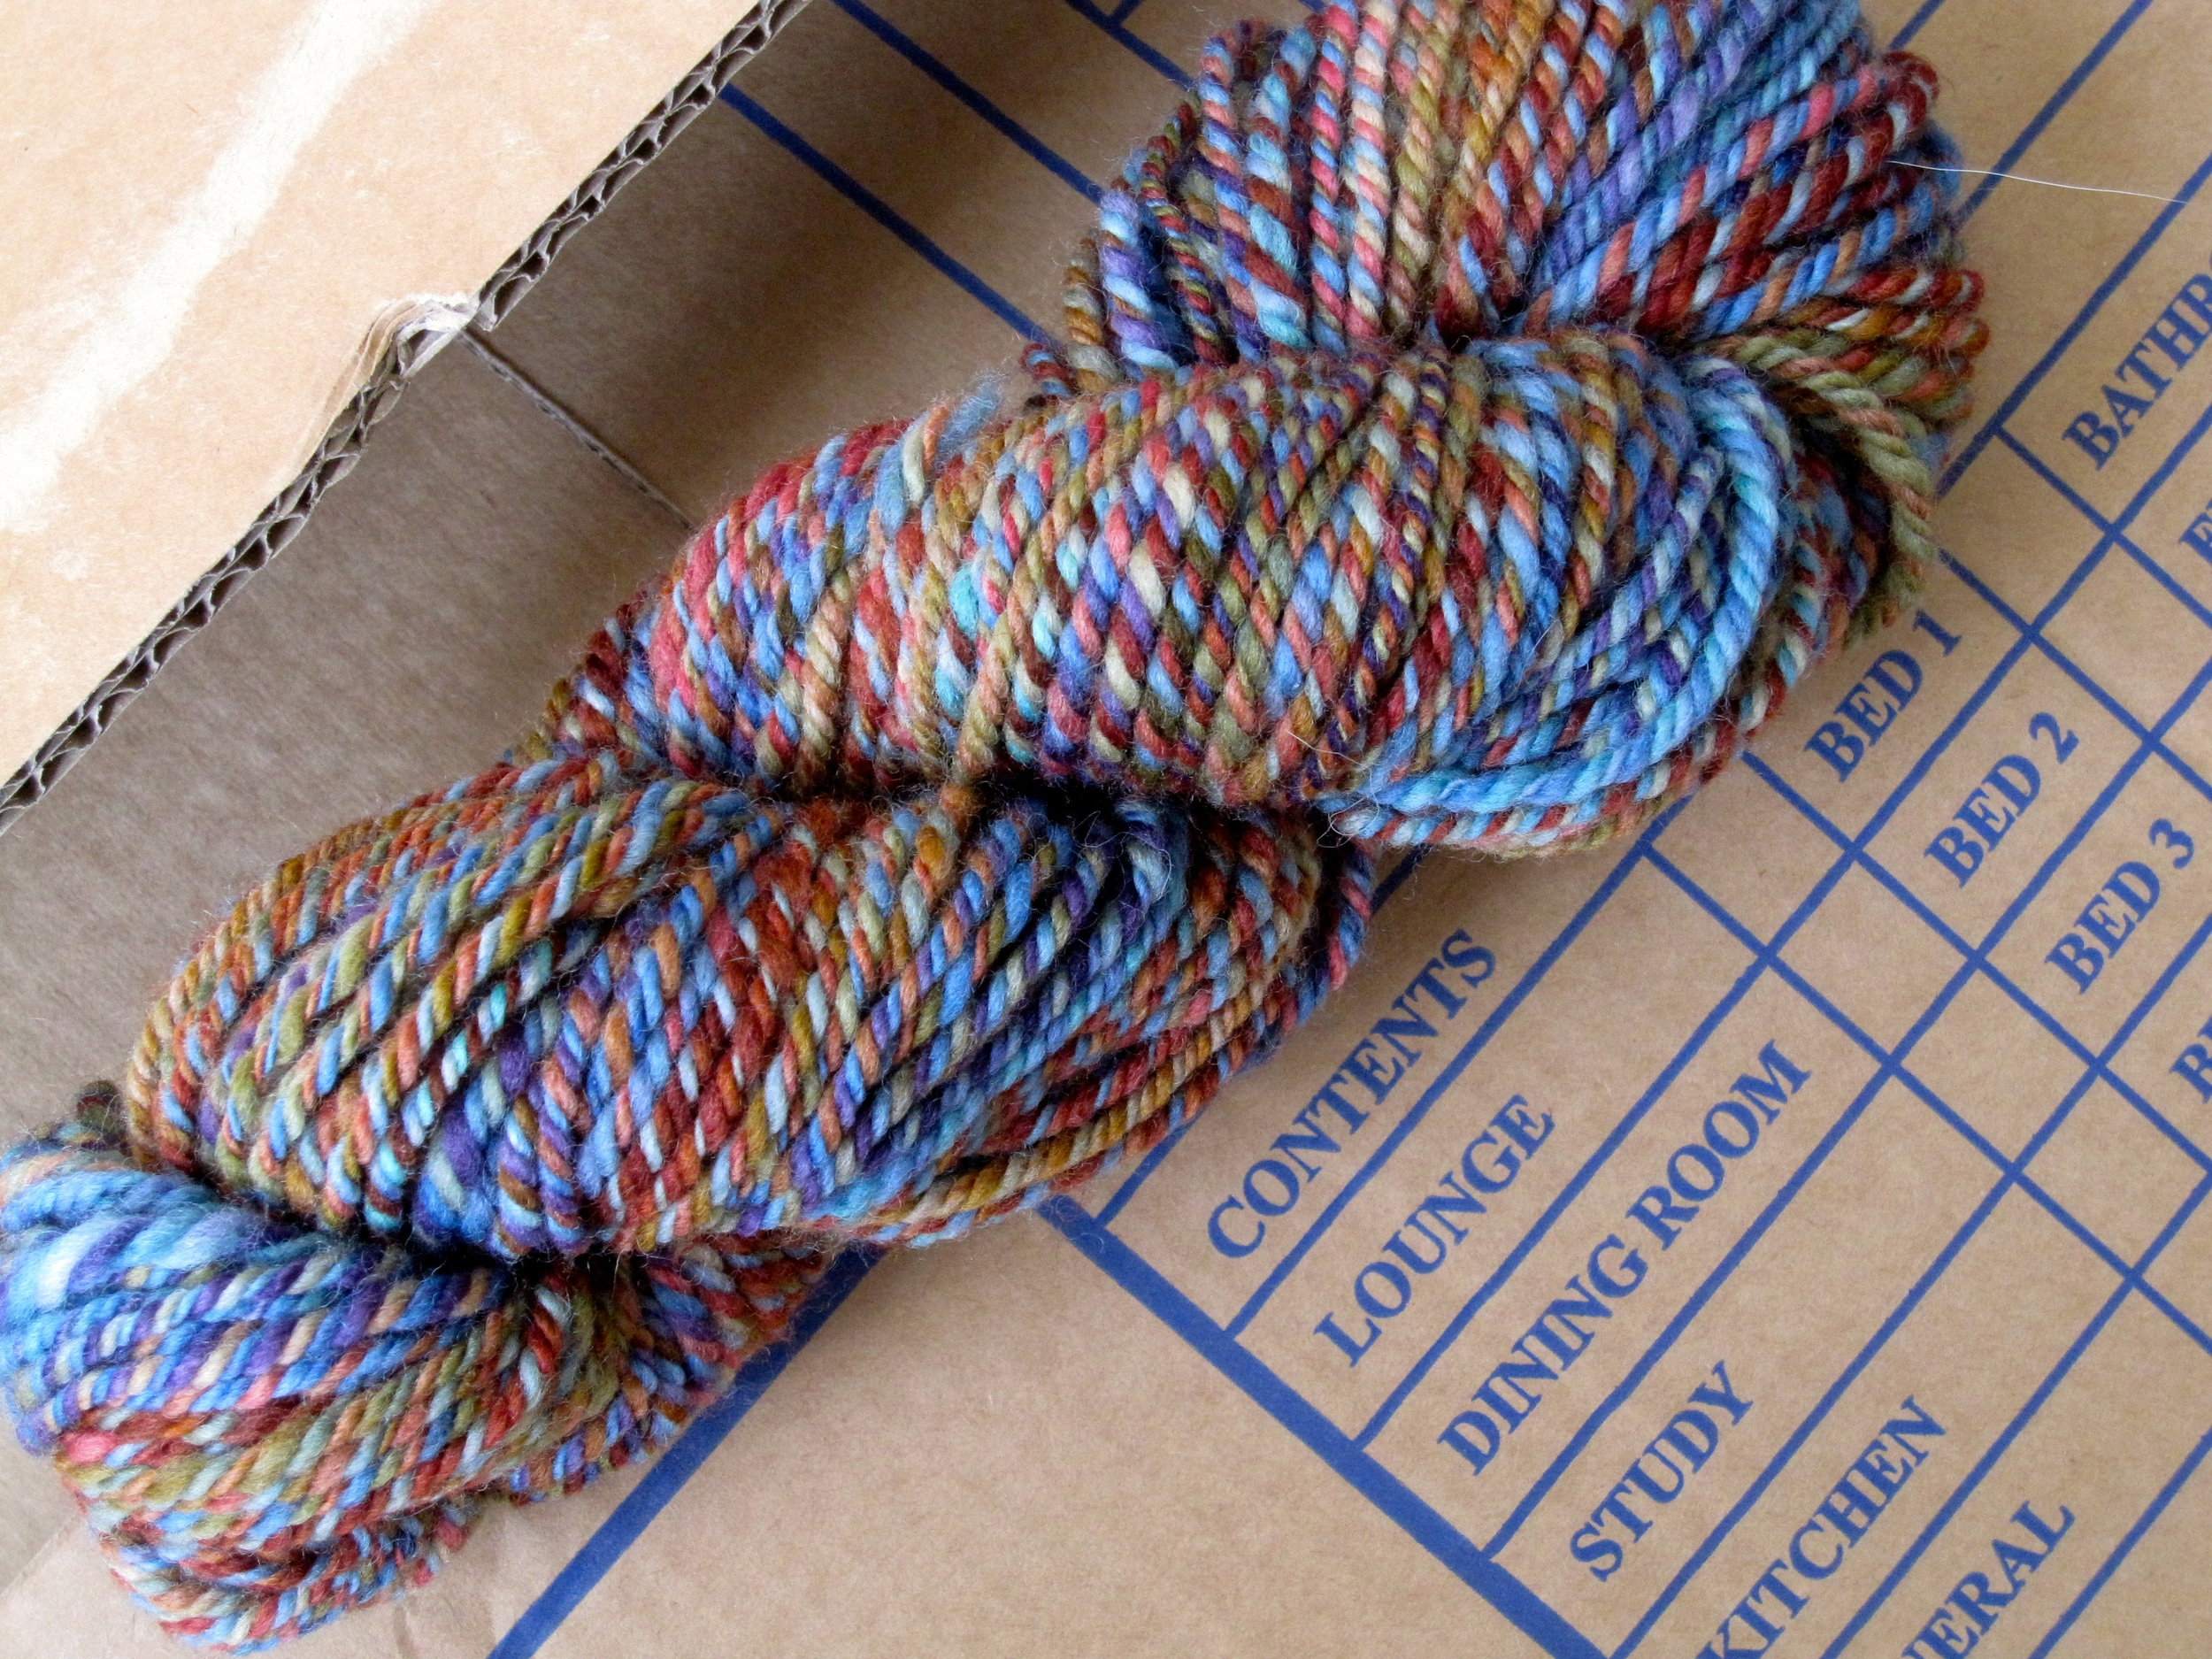 More handspun goodness.